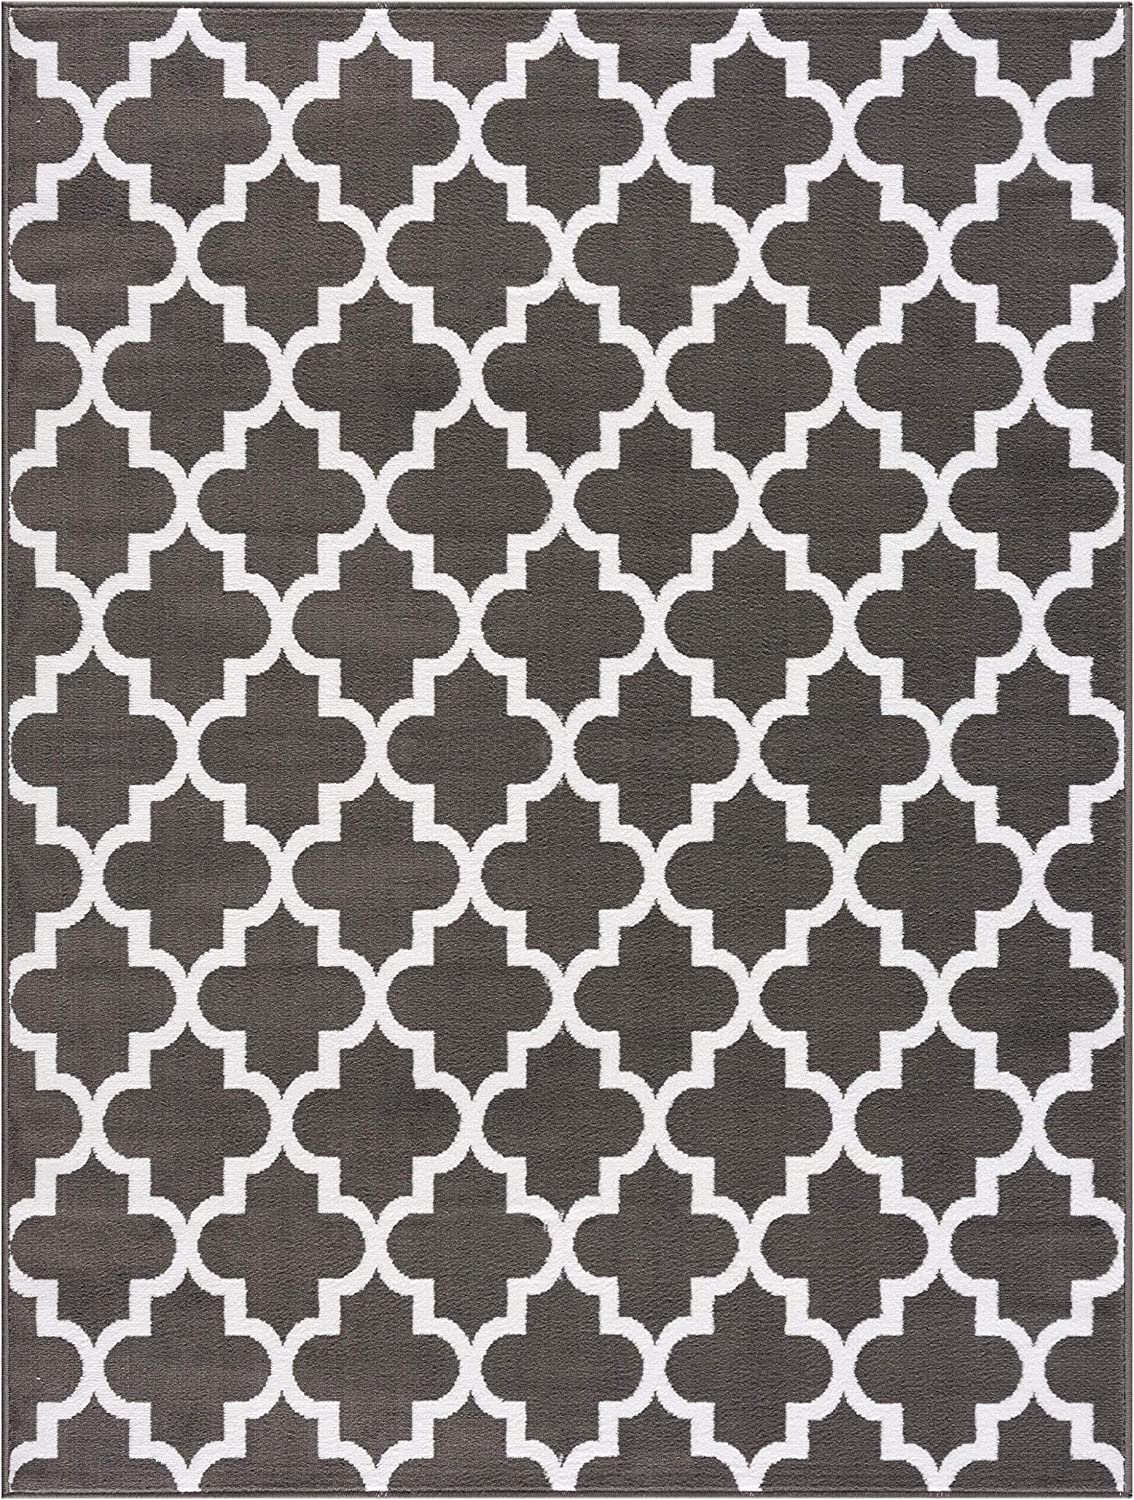 MSRUGS Trellis Collection Contemporary Soft Cozy and Vibrant 8 ft. by 10 ft. Dark Gray Area Rug